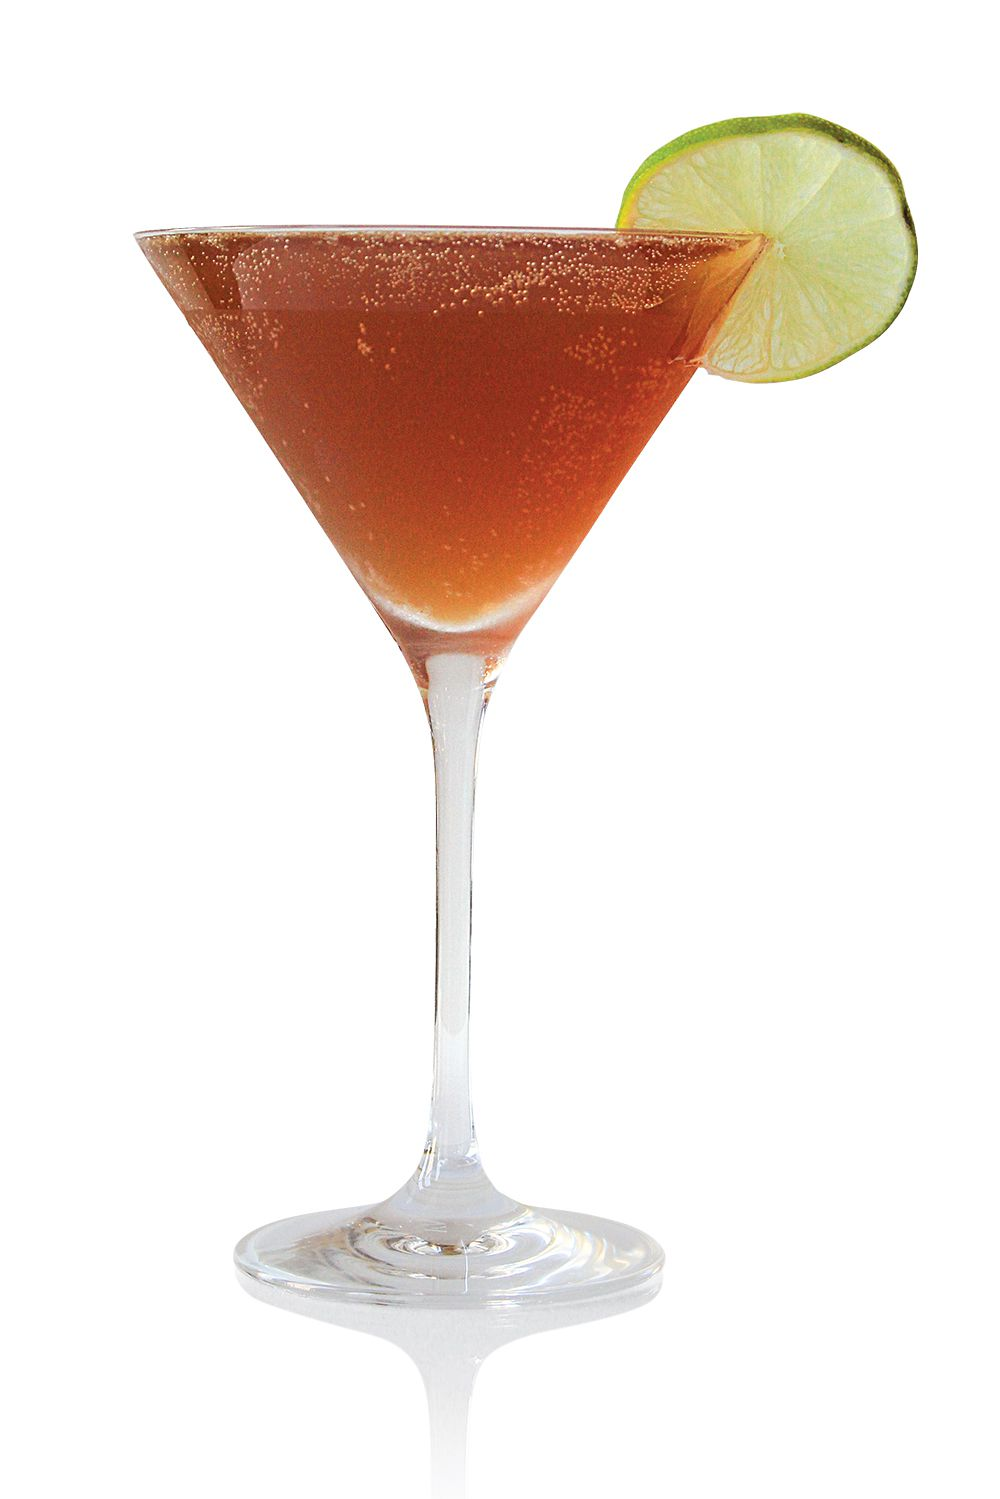 "Homemade sour mix adds fresh tang to a sweet combination of vodka and Kahlua. Get the recipe for <a href=""https://www.saveur.com/article/recipes/li-hing-mui-margarita-side-mui/"">Li Hing Mui Margarita (""Side-Mui"")</a>"